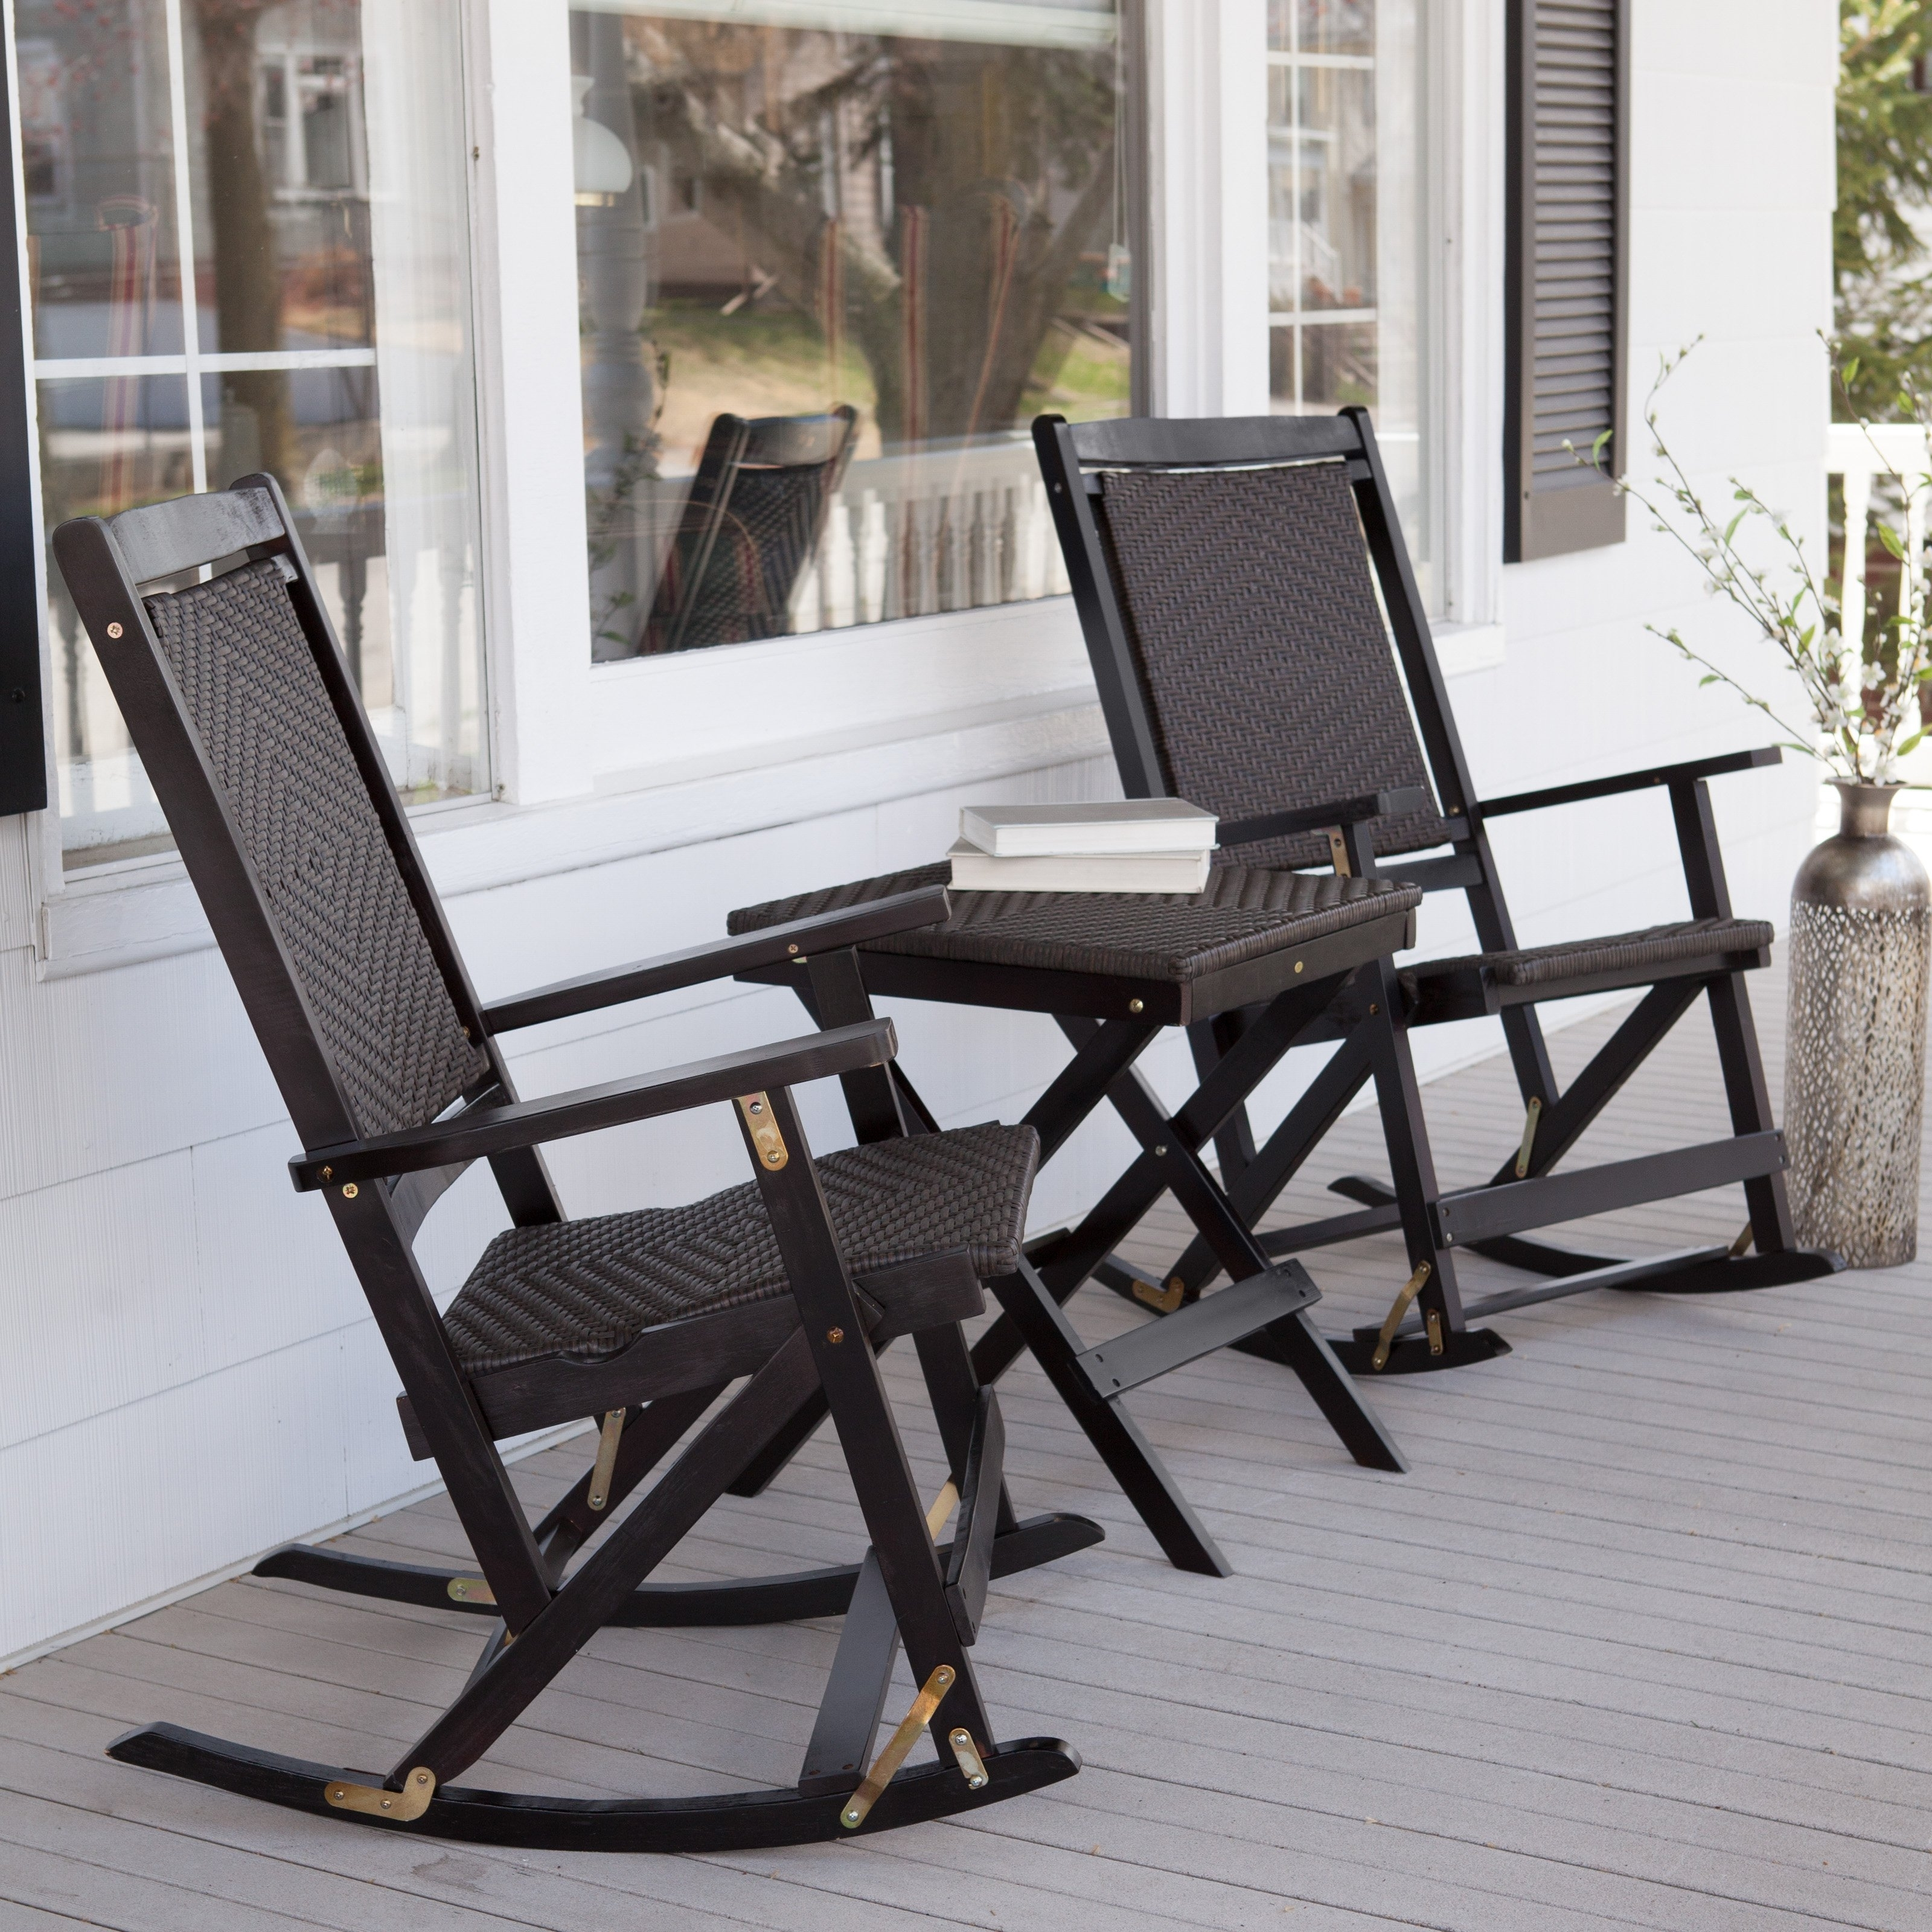 Most Recent Black Patio Rocking Chairs Inside Black Wicker Rocking Chair With Black Stained Wooden Based Combined (View 12 of 15)